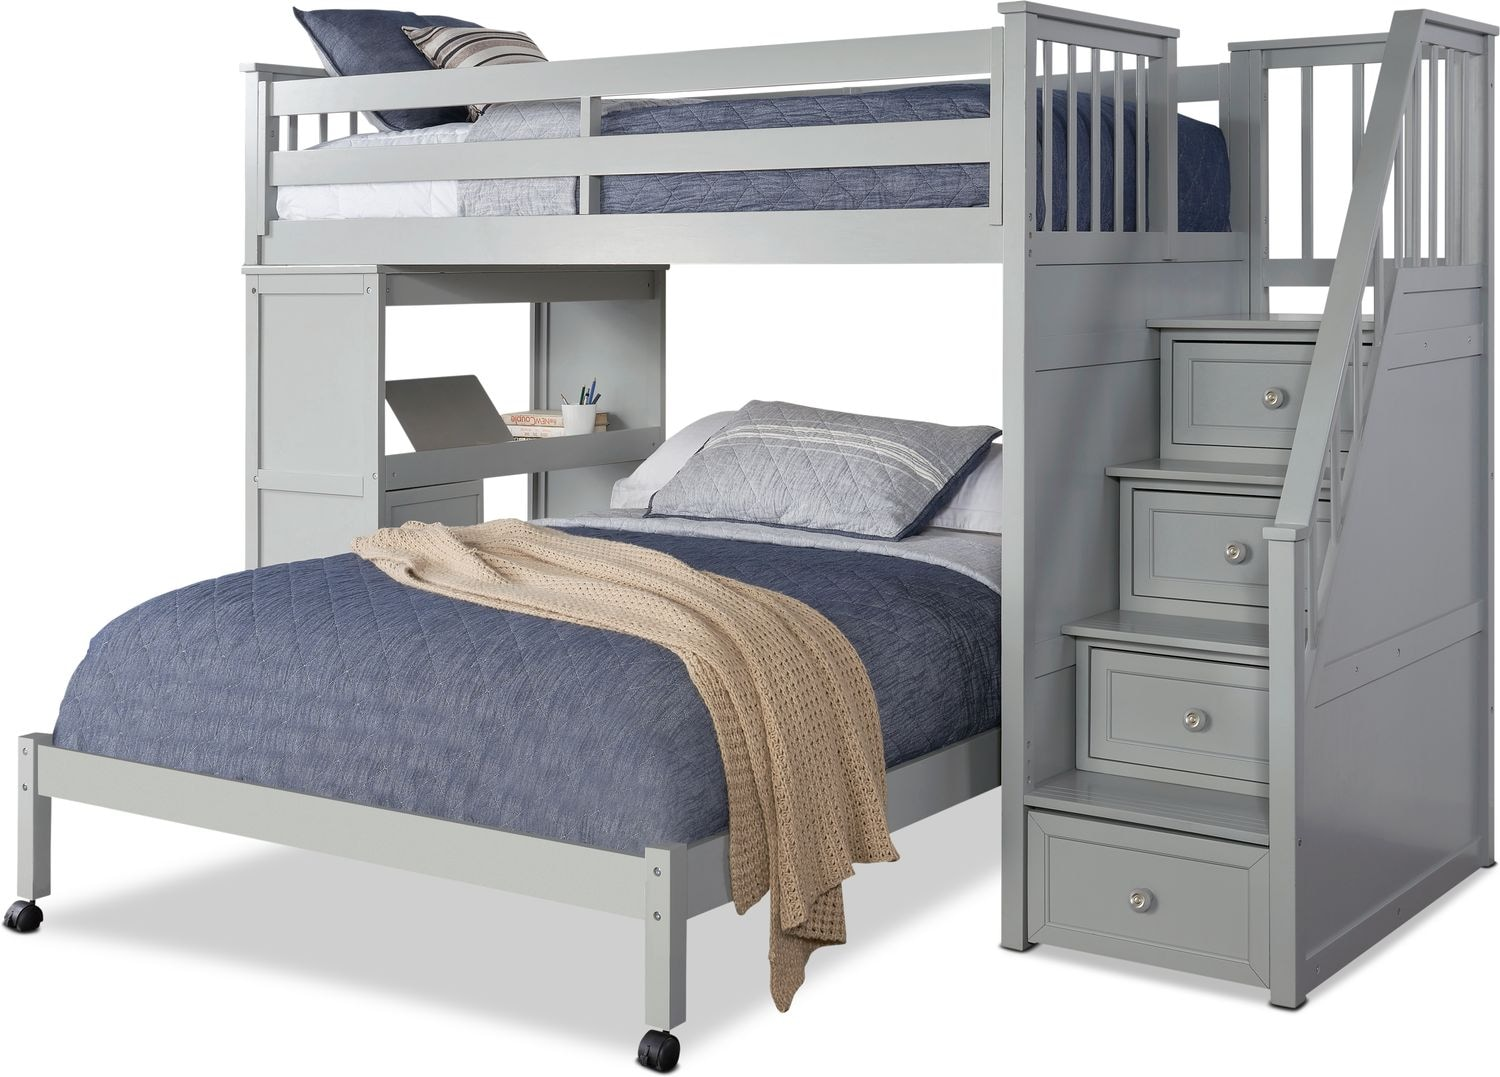 Kids Furniture - Flynn Loft Bed with Storage Stairs and Desk